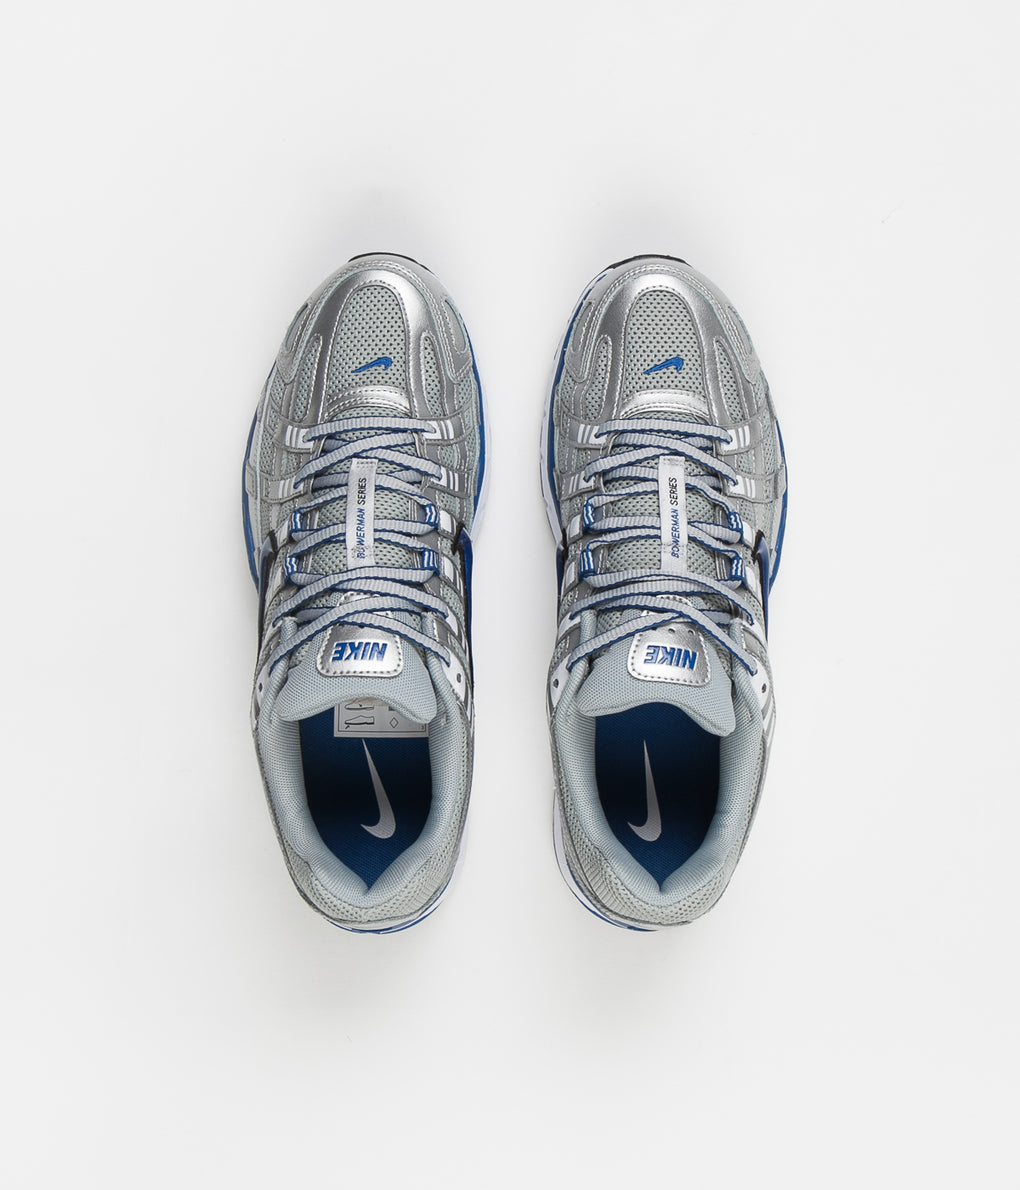 Nike P-6000 Shoes - Metallic Silver / Team Royal - White - Black